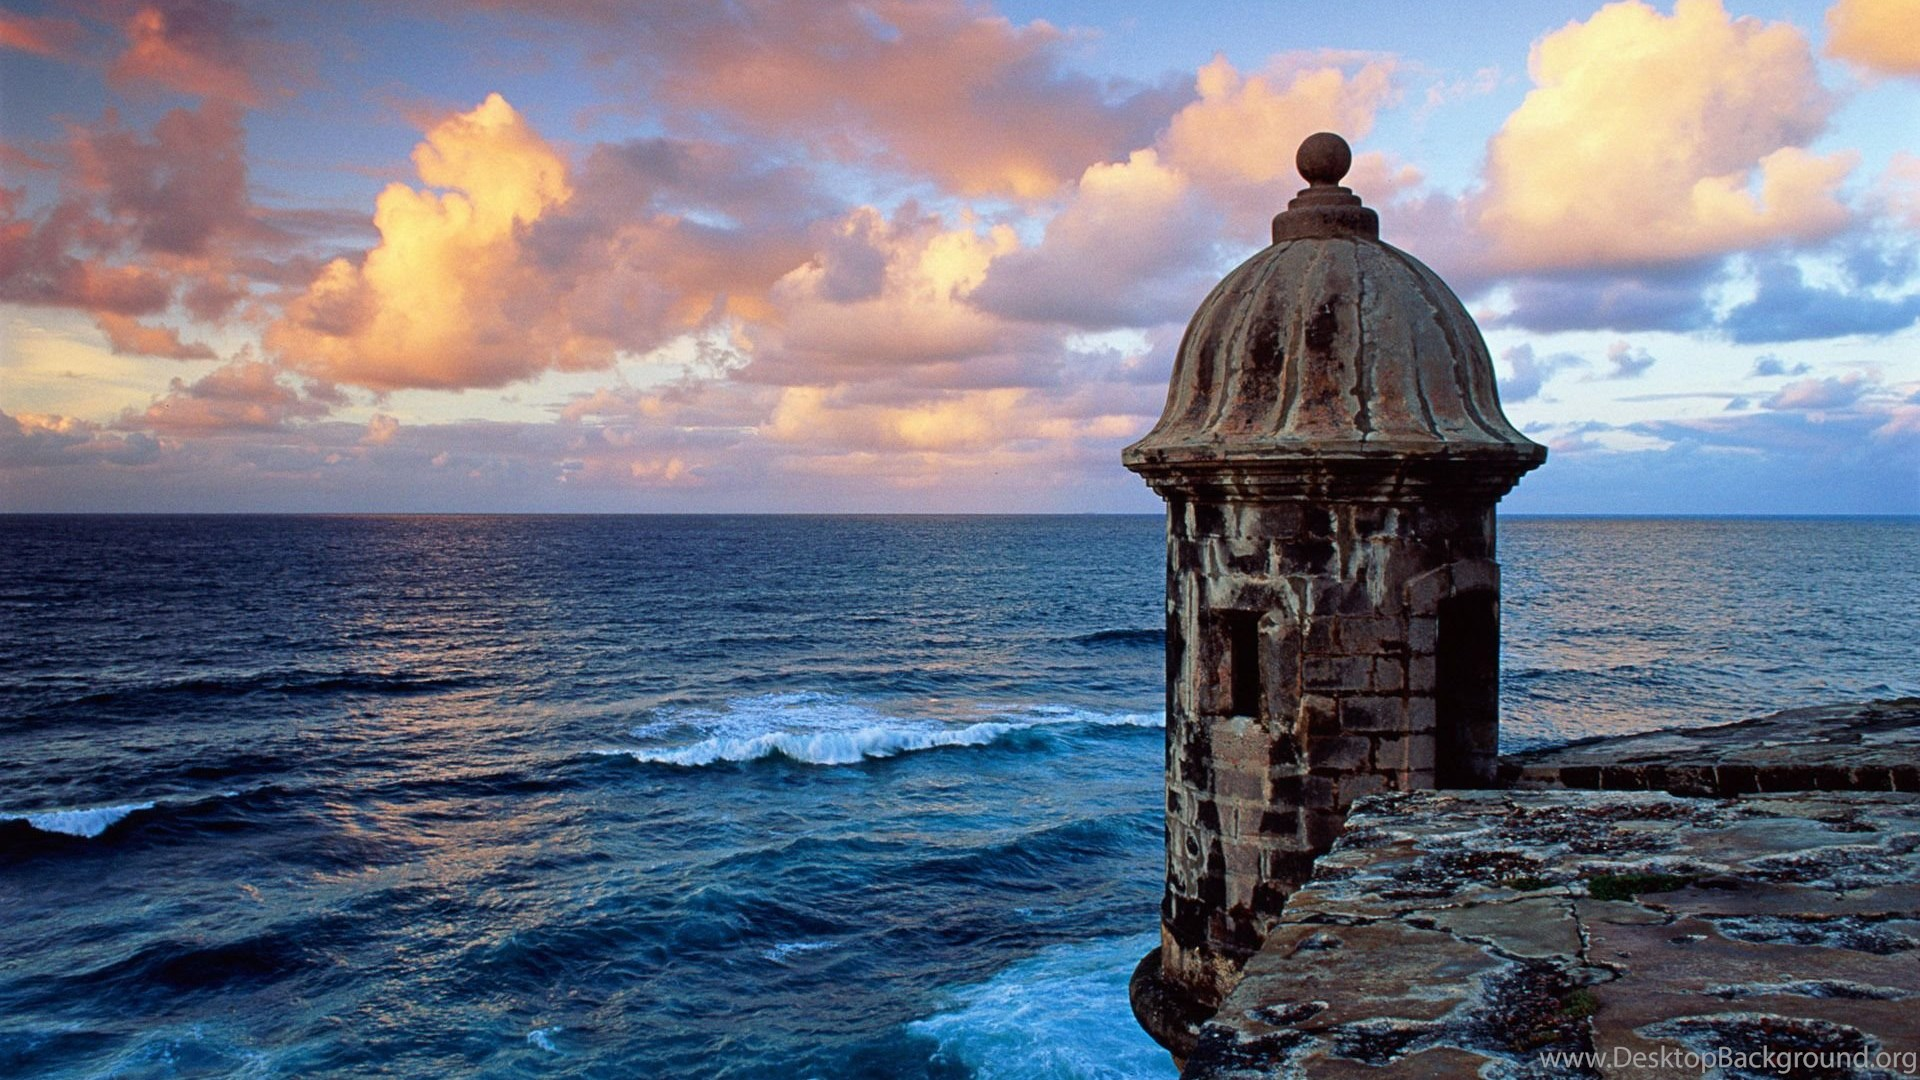 Download Free Puerto Rico Backgrounds: Puerto Rico Location Wallpaper. Desktop Background